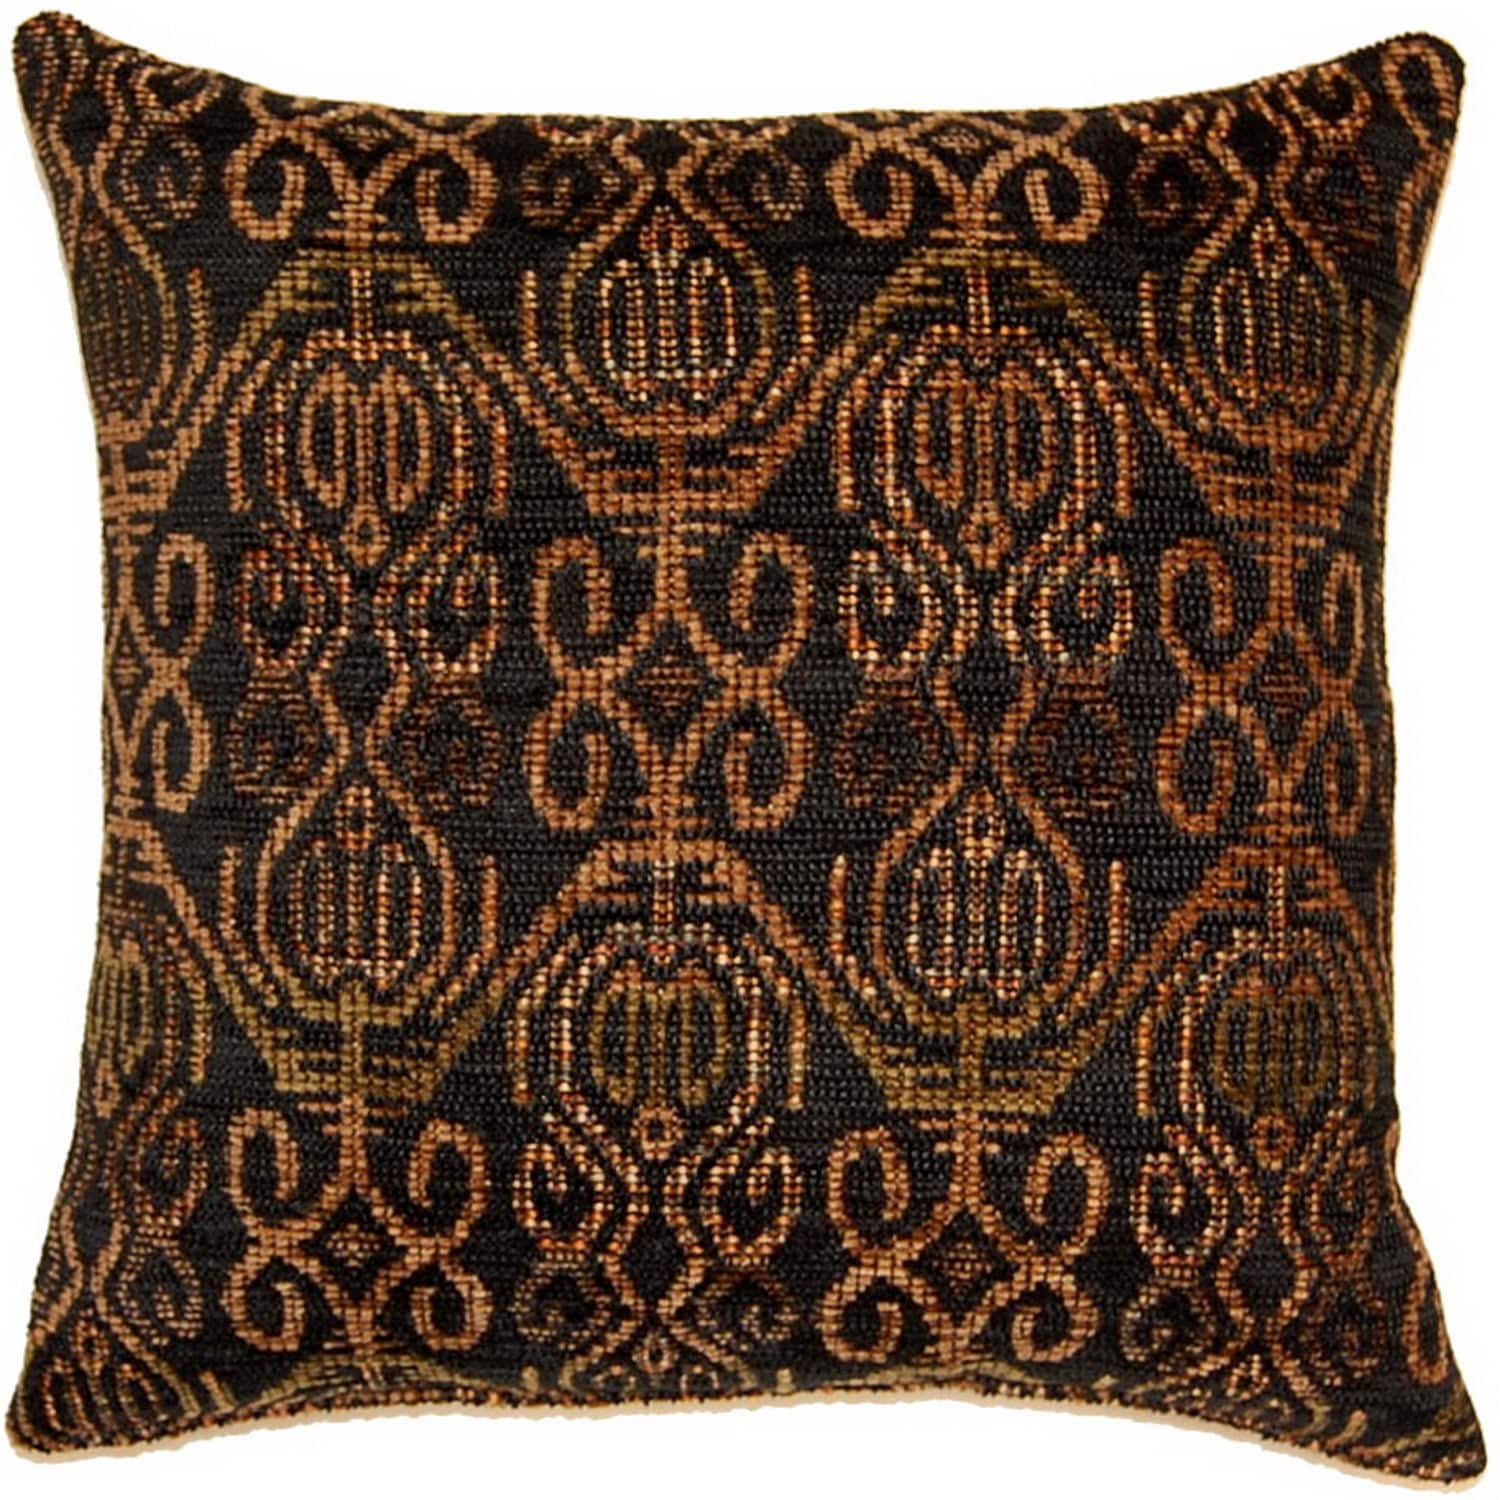 Fox Hill Trading Hidalgo Onyx 17-inch Throw Pillows (Set of 2)